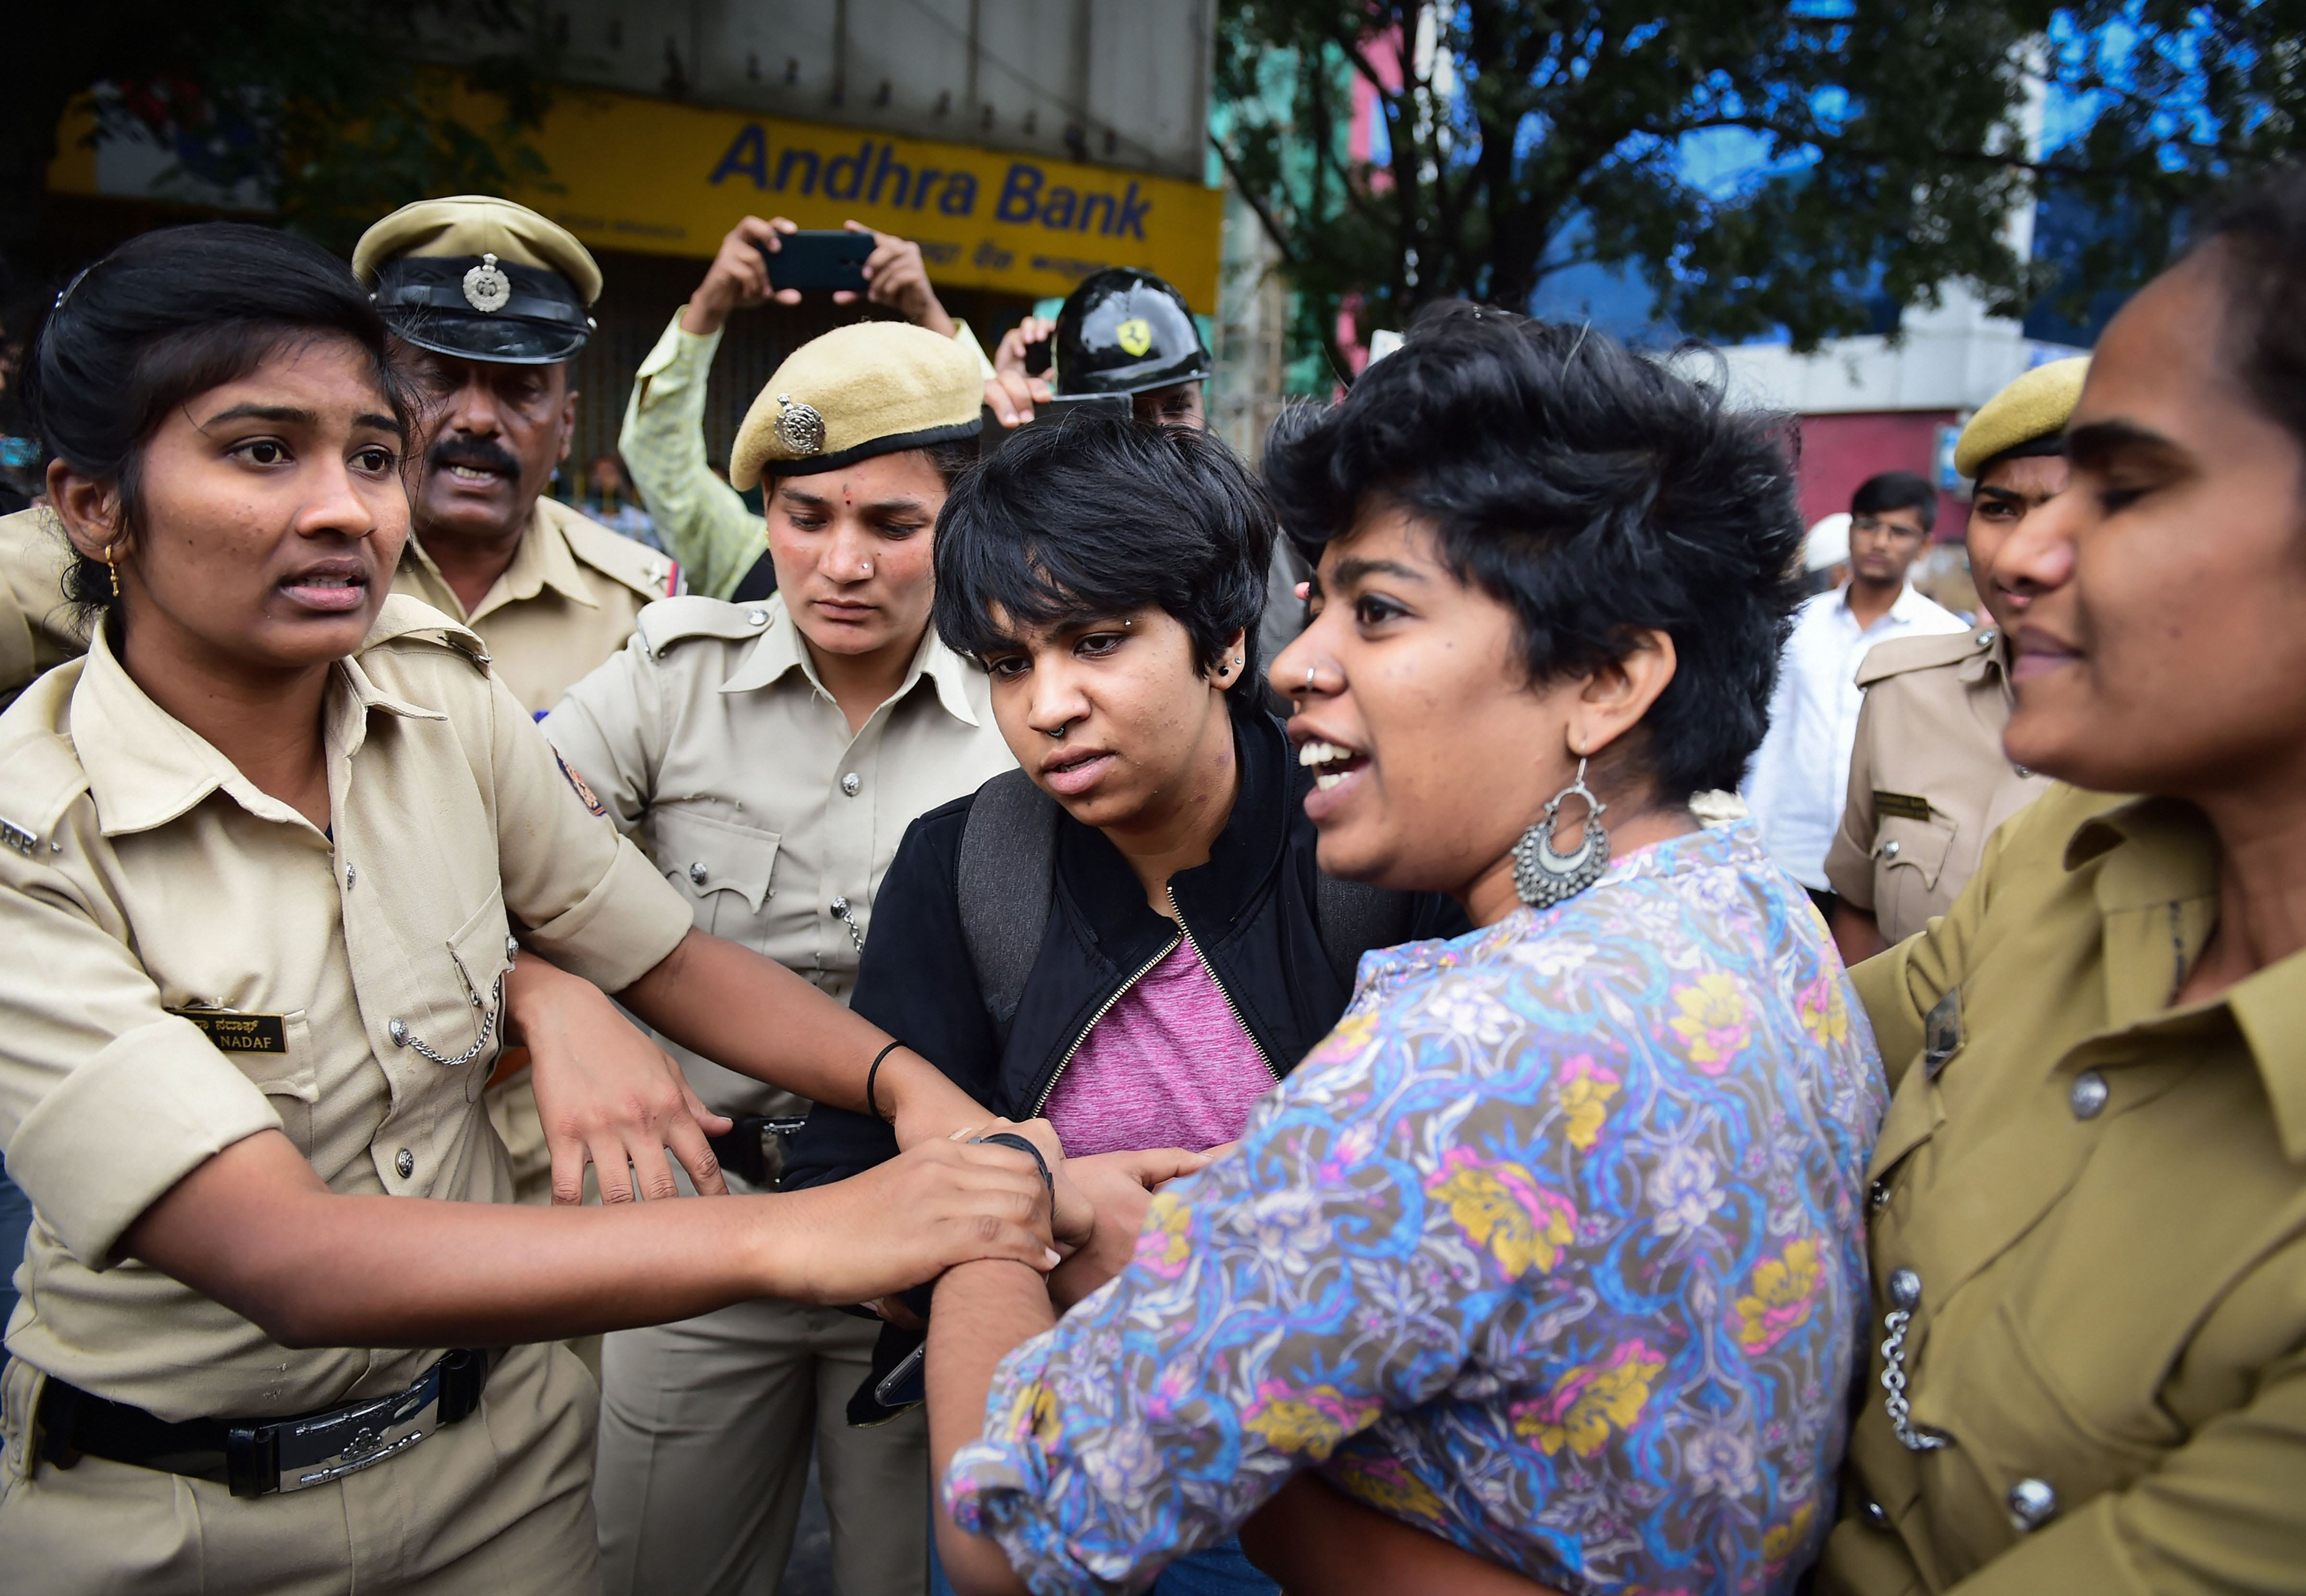 Protestors detained by police for defying prohibitory orders imposed in the area during an anti-Citizenship Act protest rally, in Bengaluru, Thursday, December 19, 2019.